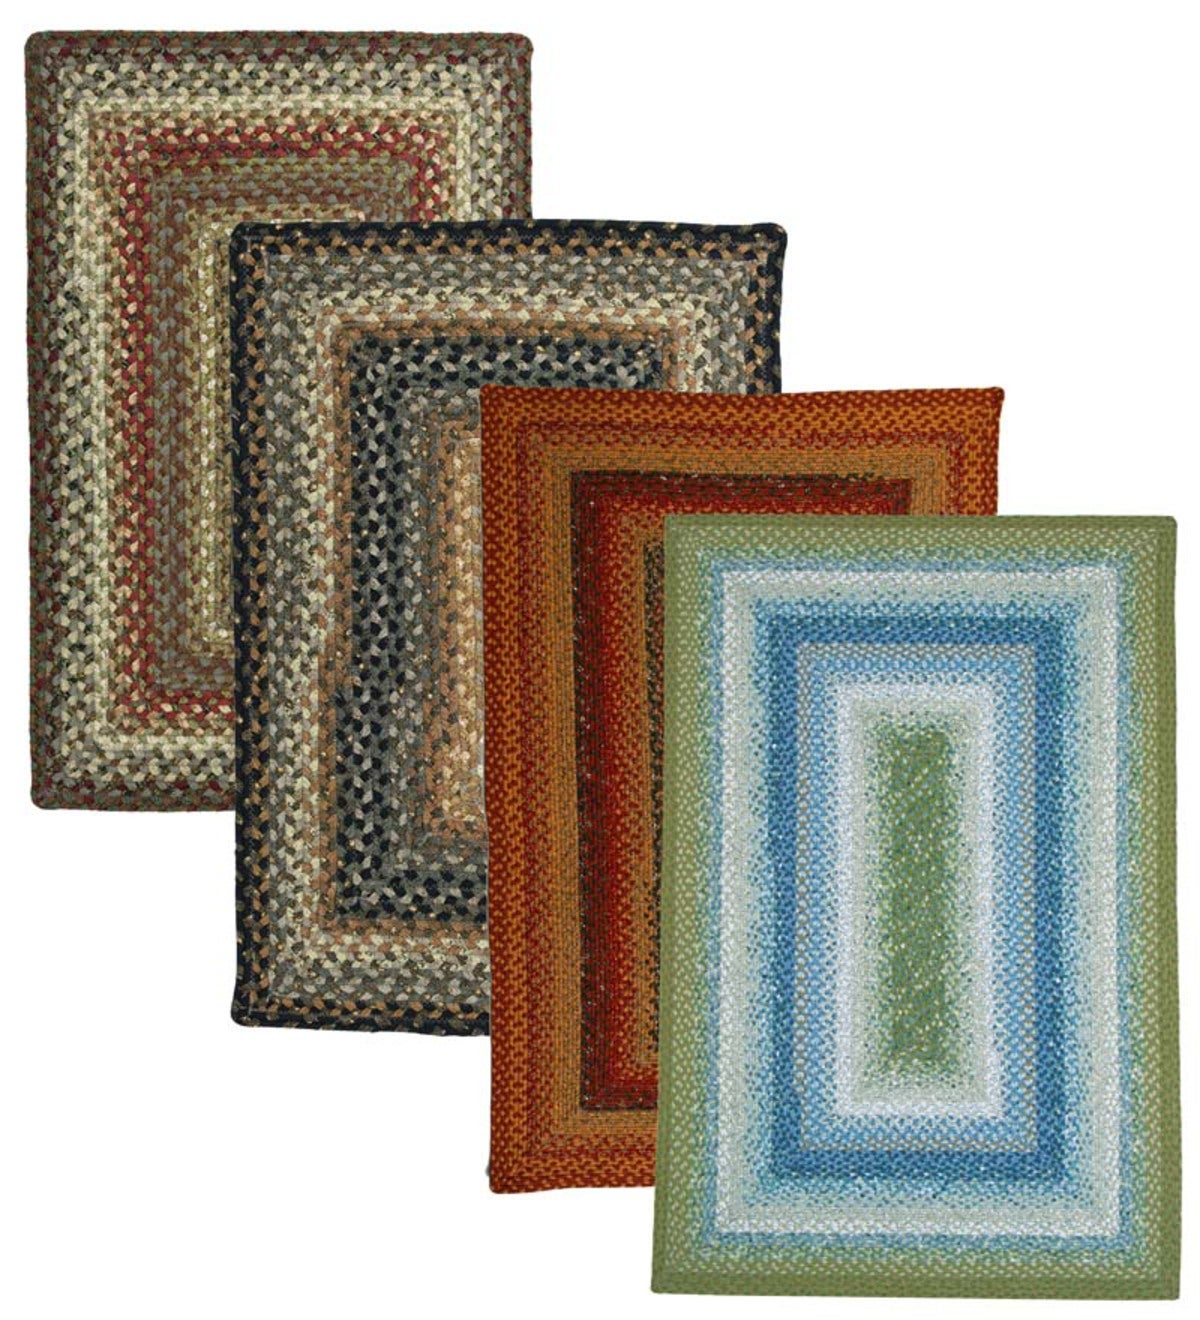 8 X 10 Rectangular Cotton Blend Braided Rug Biscotti